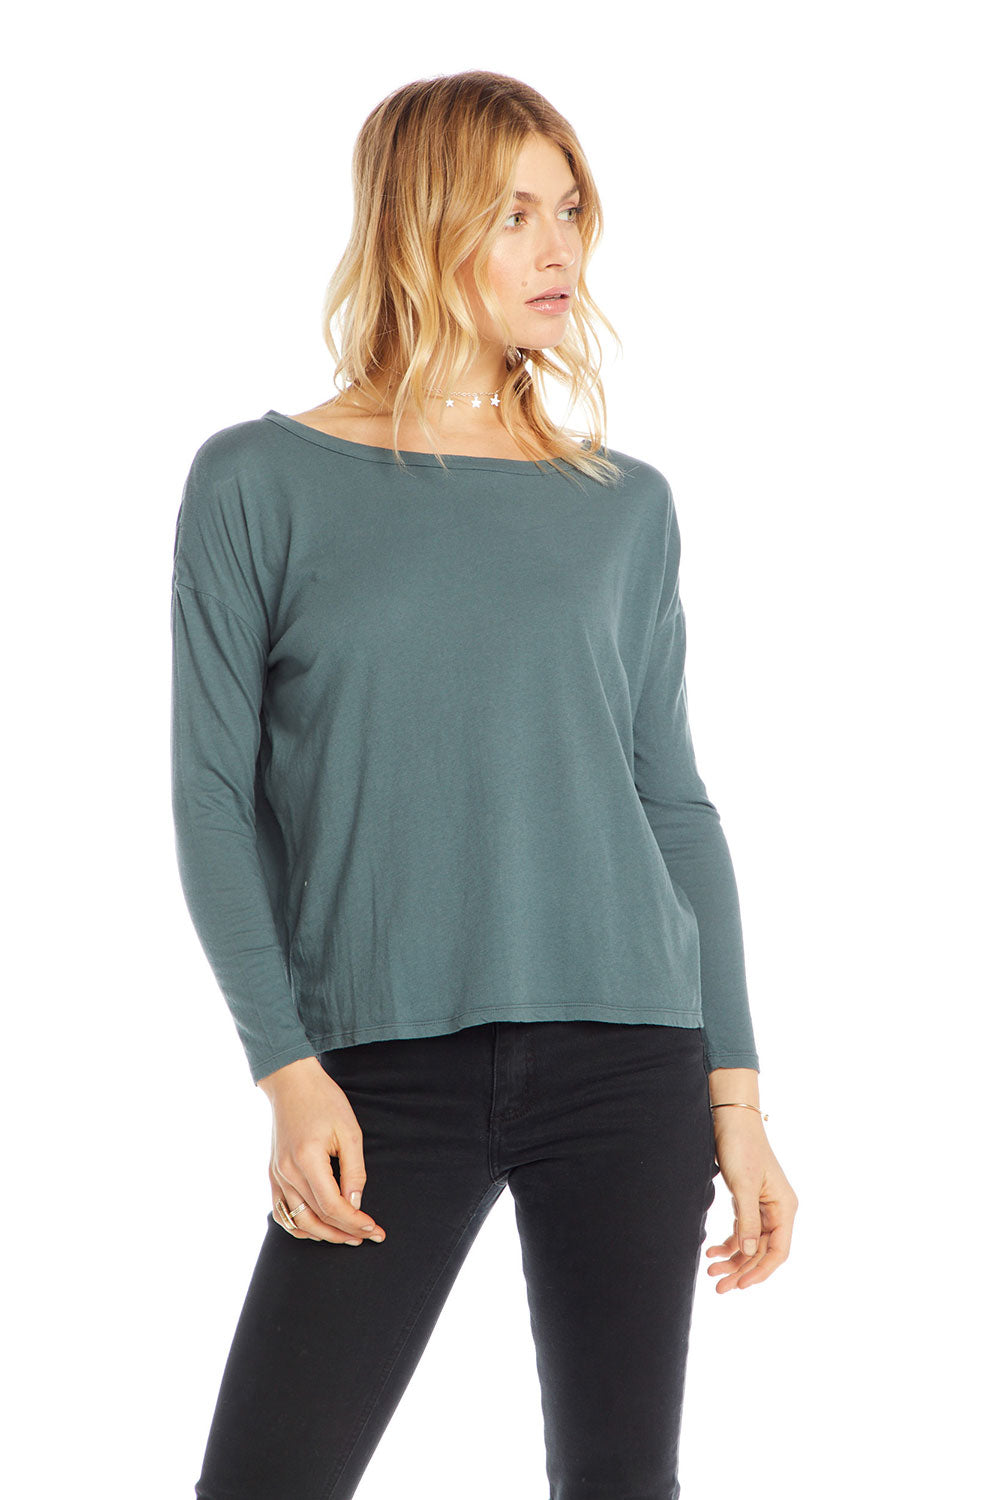 Cotton Basics Long Sleeve Crew Neck Seamed Back Dolman Tee WOMENS - chaserbrand